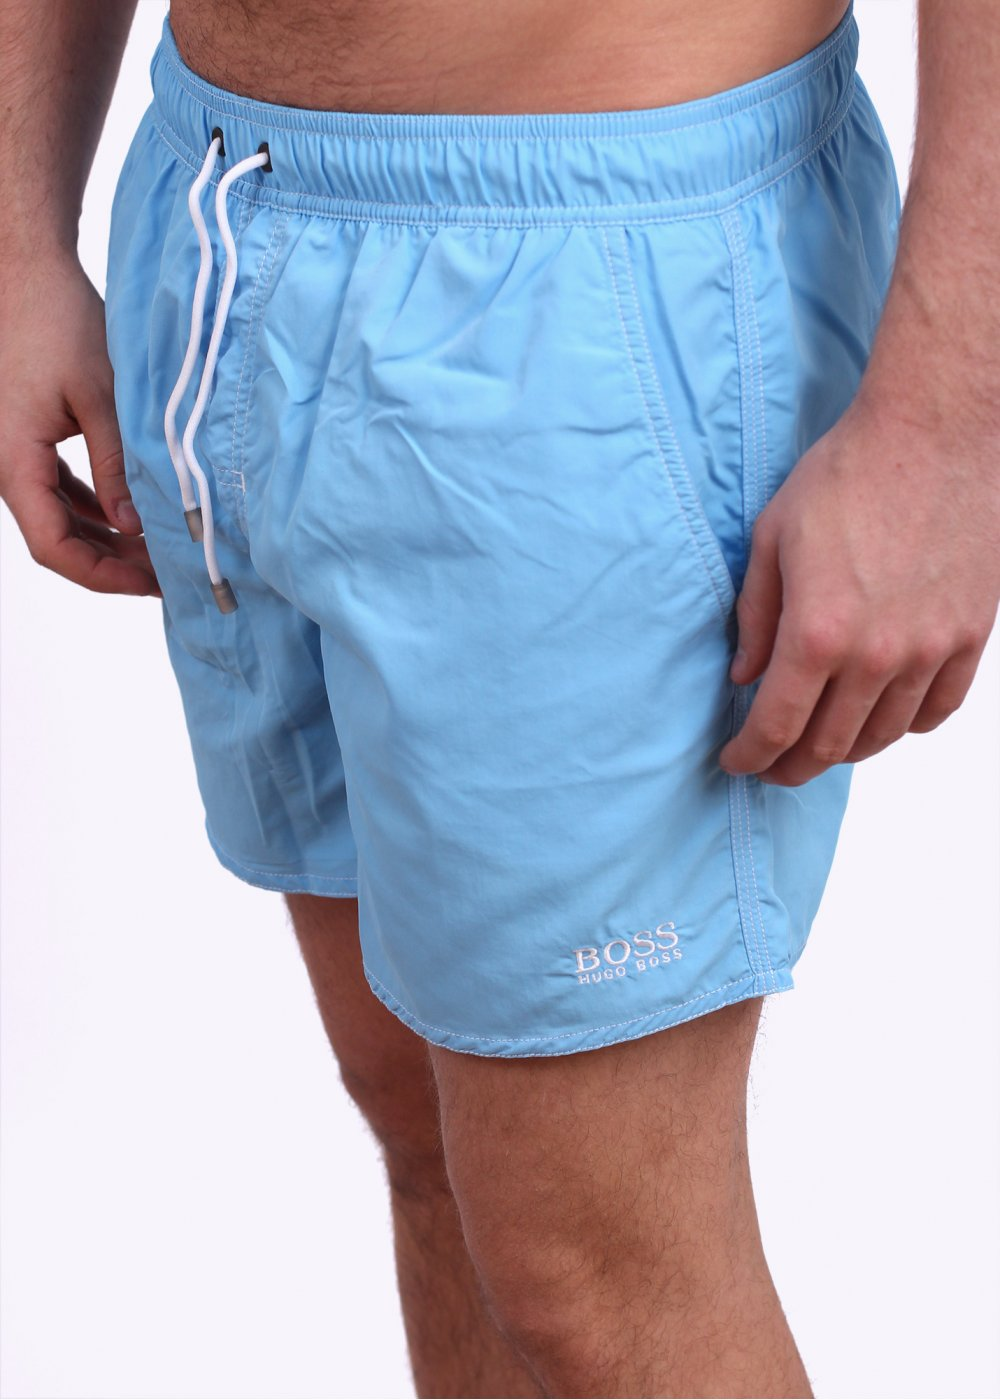 e6ed5c7fd Hugo Boss Black Lobster Swim Shorts - Light Blue